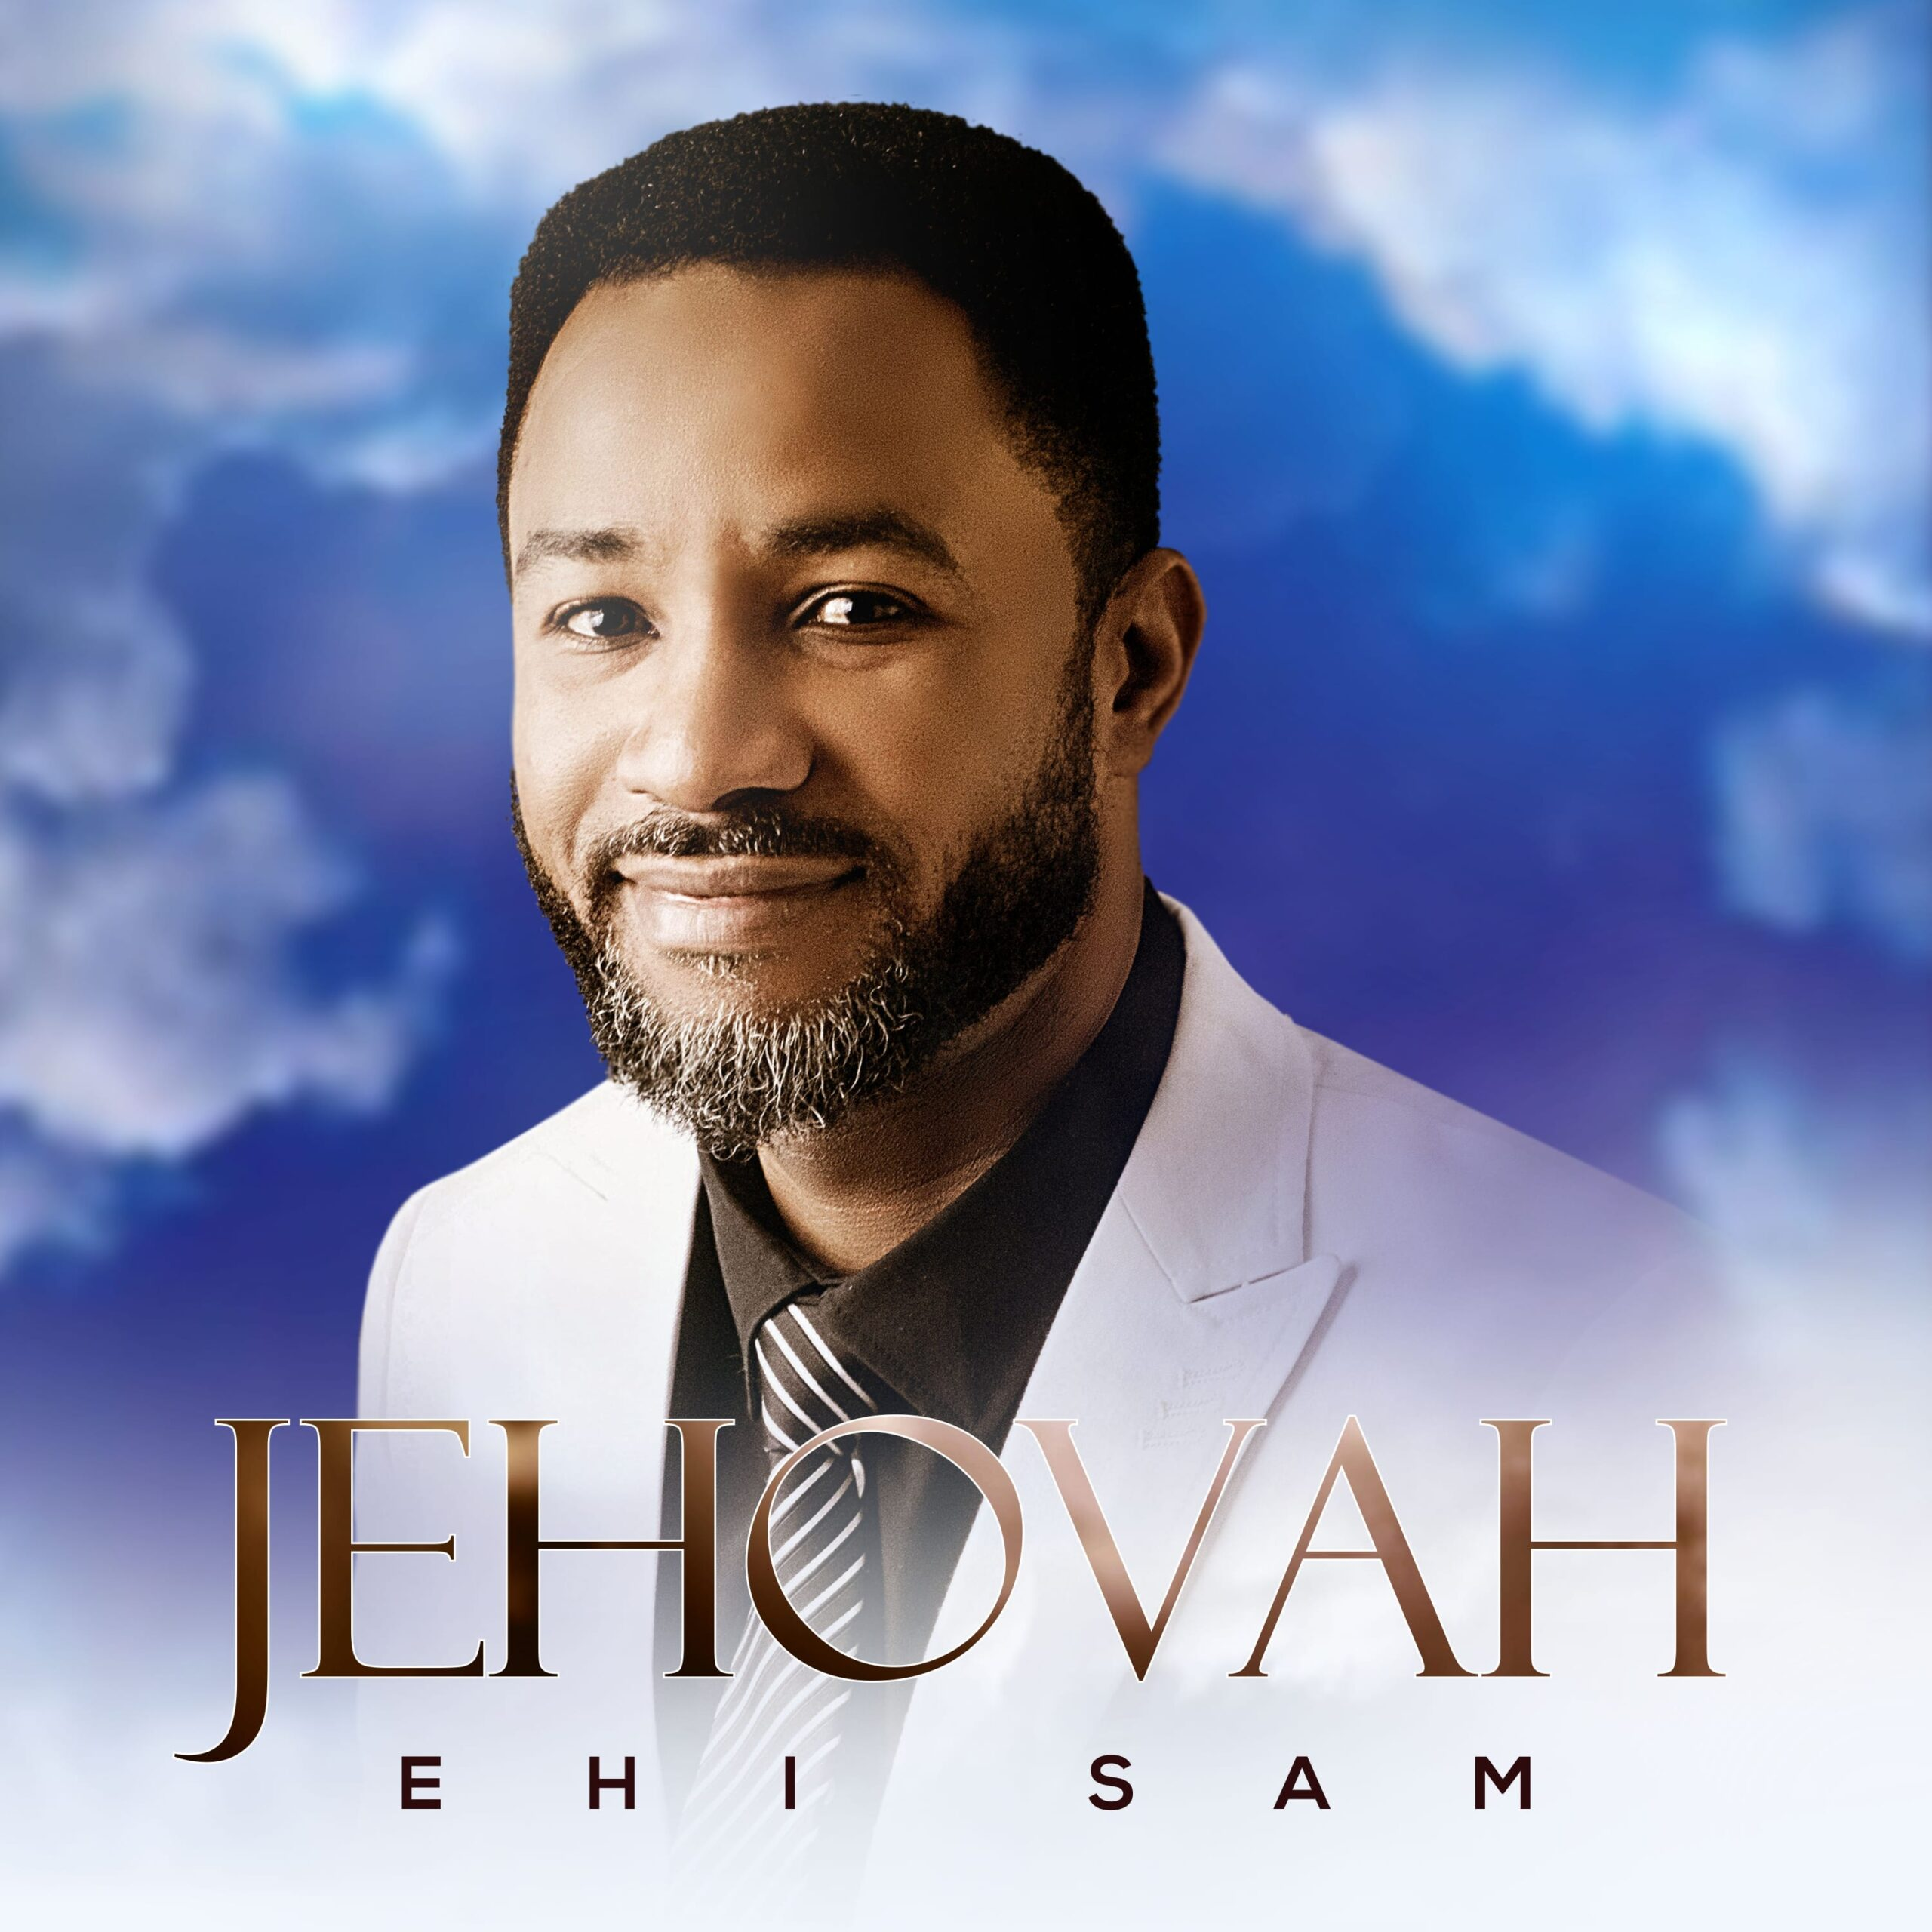 Photo of Jehovah by Ehi Sam